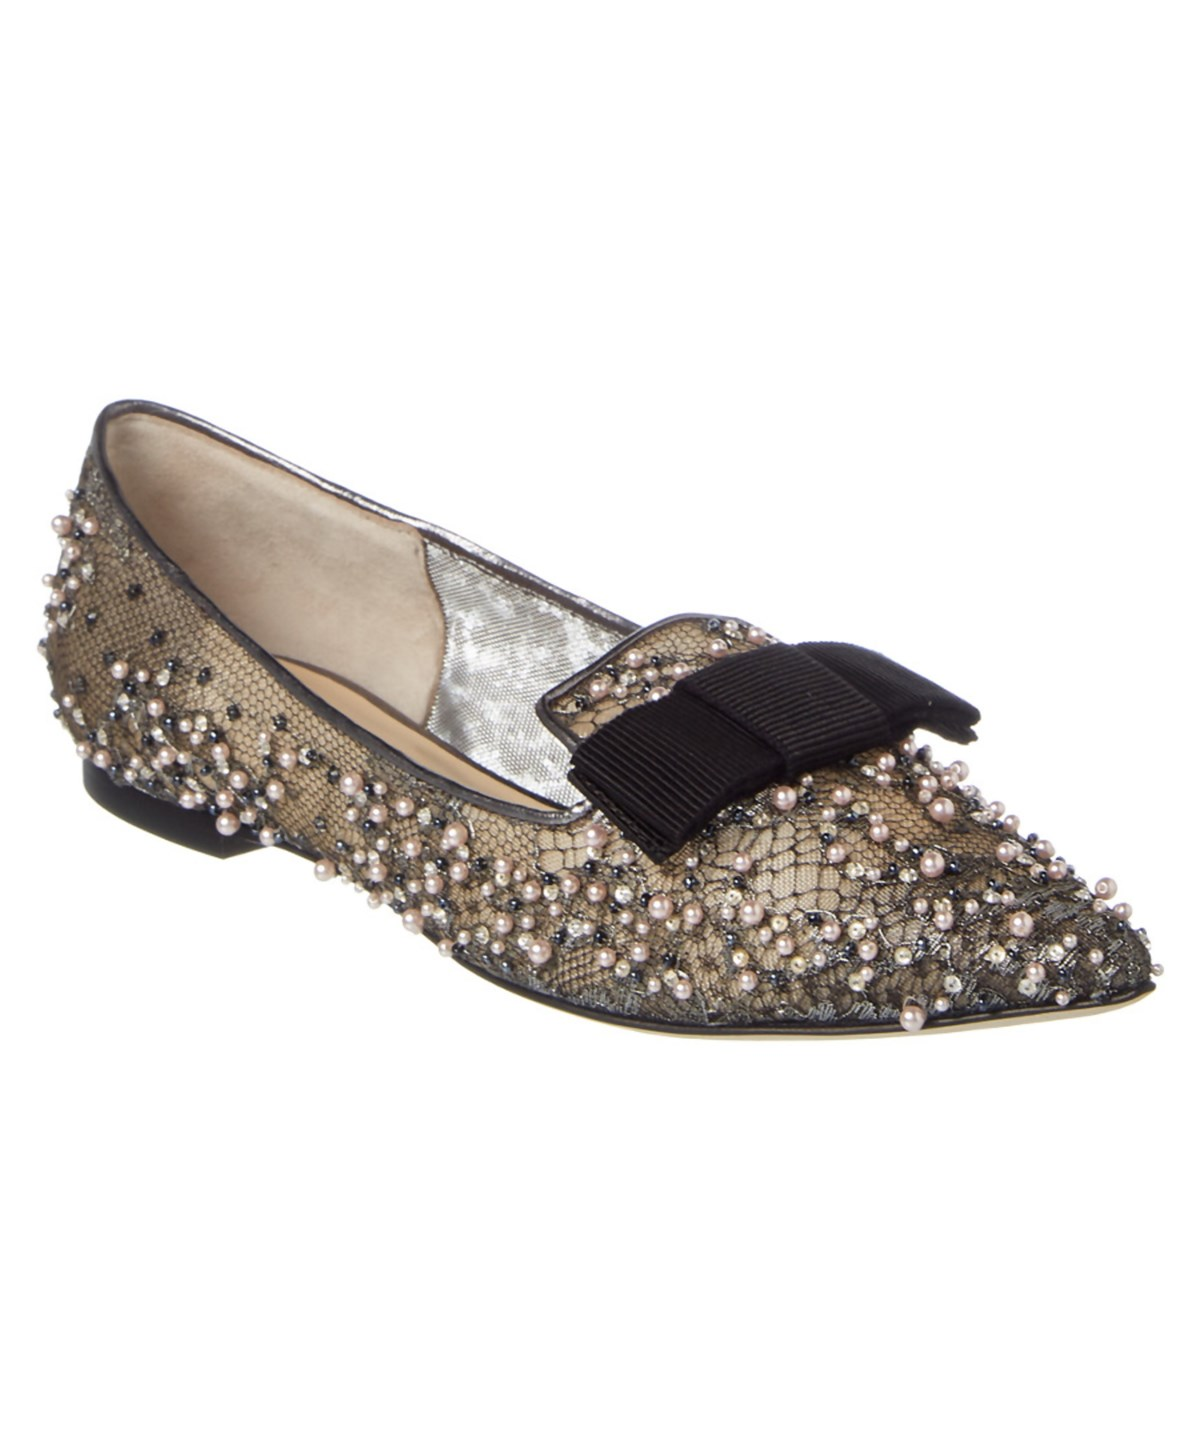 Jimmy Choo Gala Anthracite Lace Crystal And Pearl Embellished Pointy Toe Flats With Bow Detail